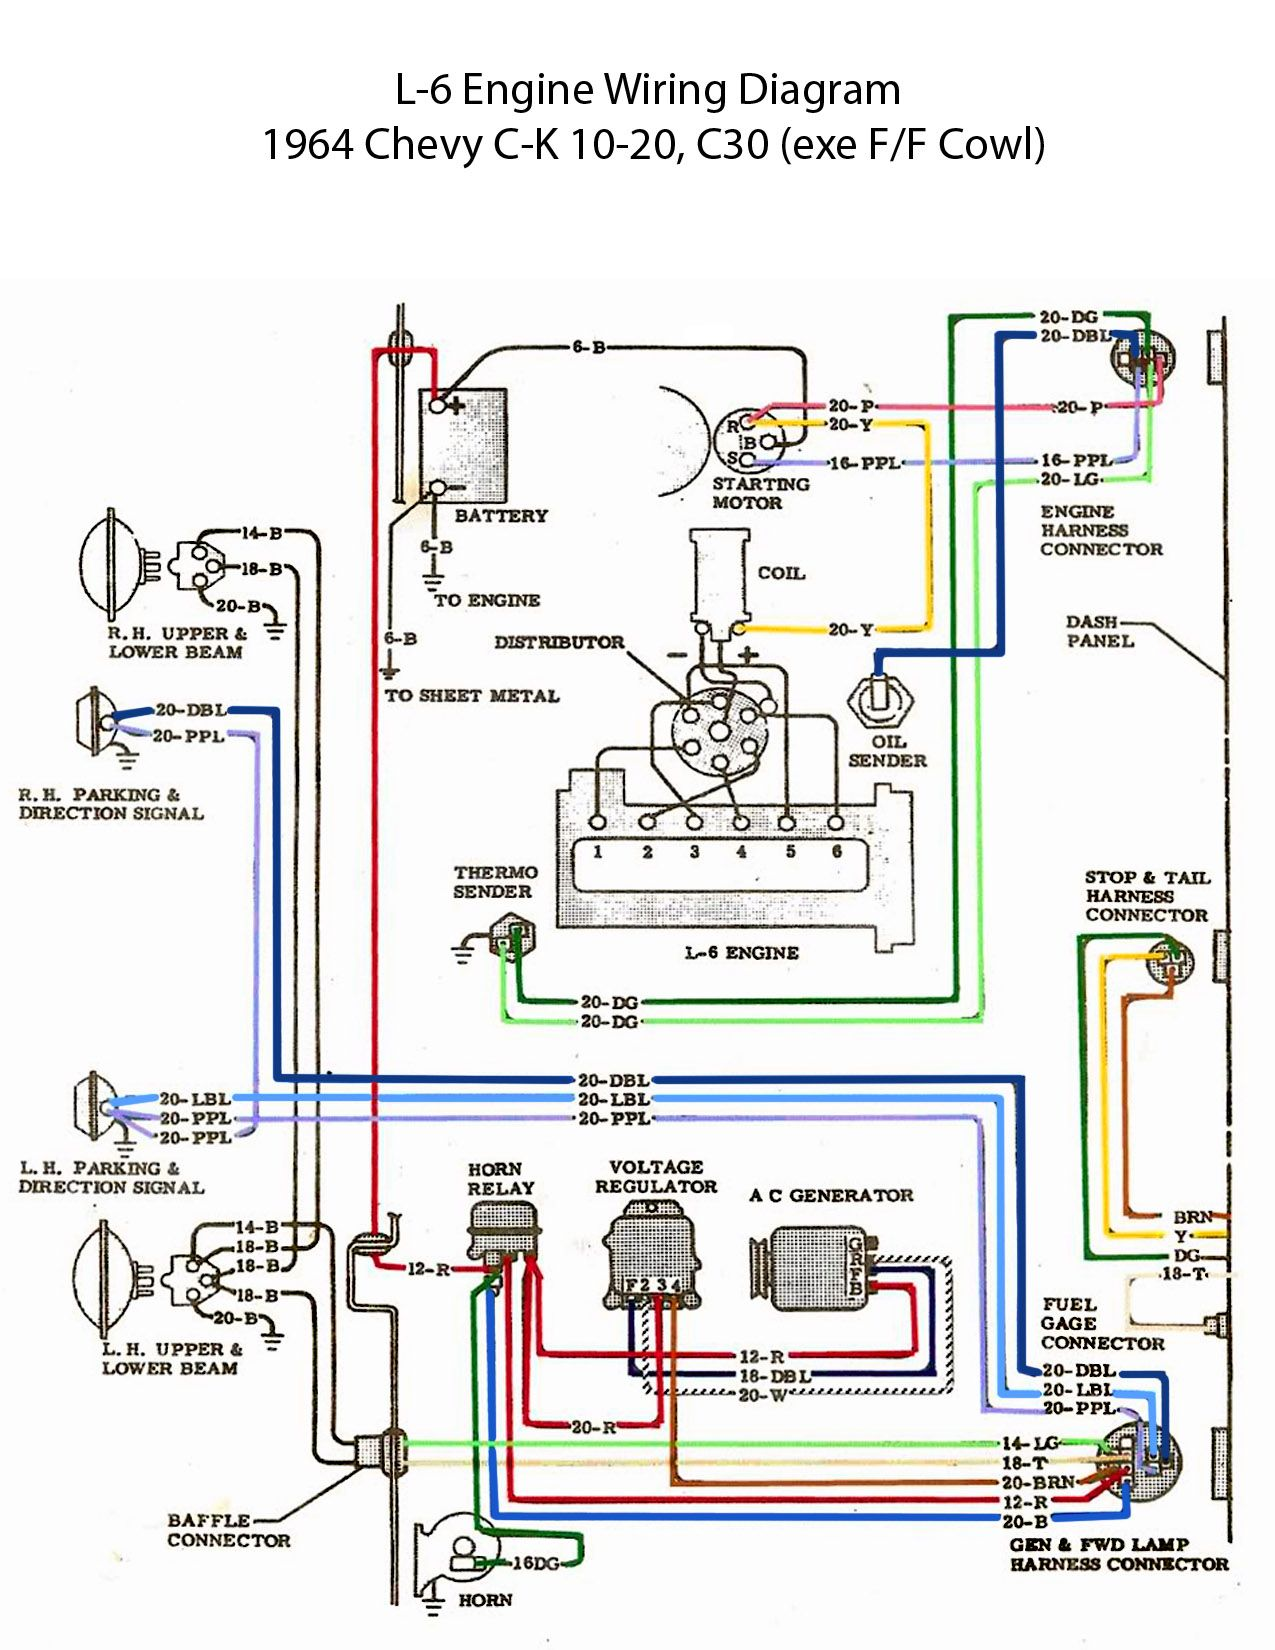 Magnificent Electric L 6 Engine Wiring Diagram 60S Chevy C10 Wiring Wiring Cloud Grayisramohammedshrineorg